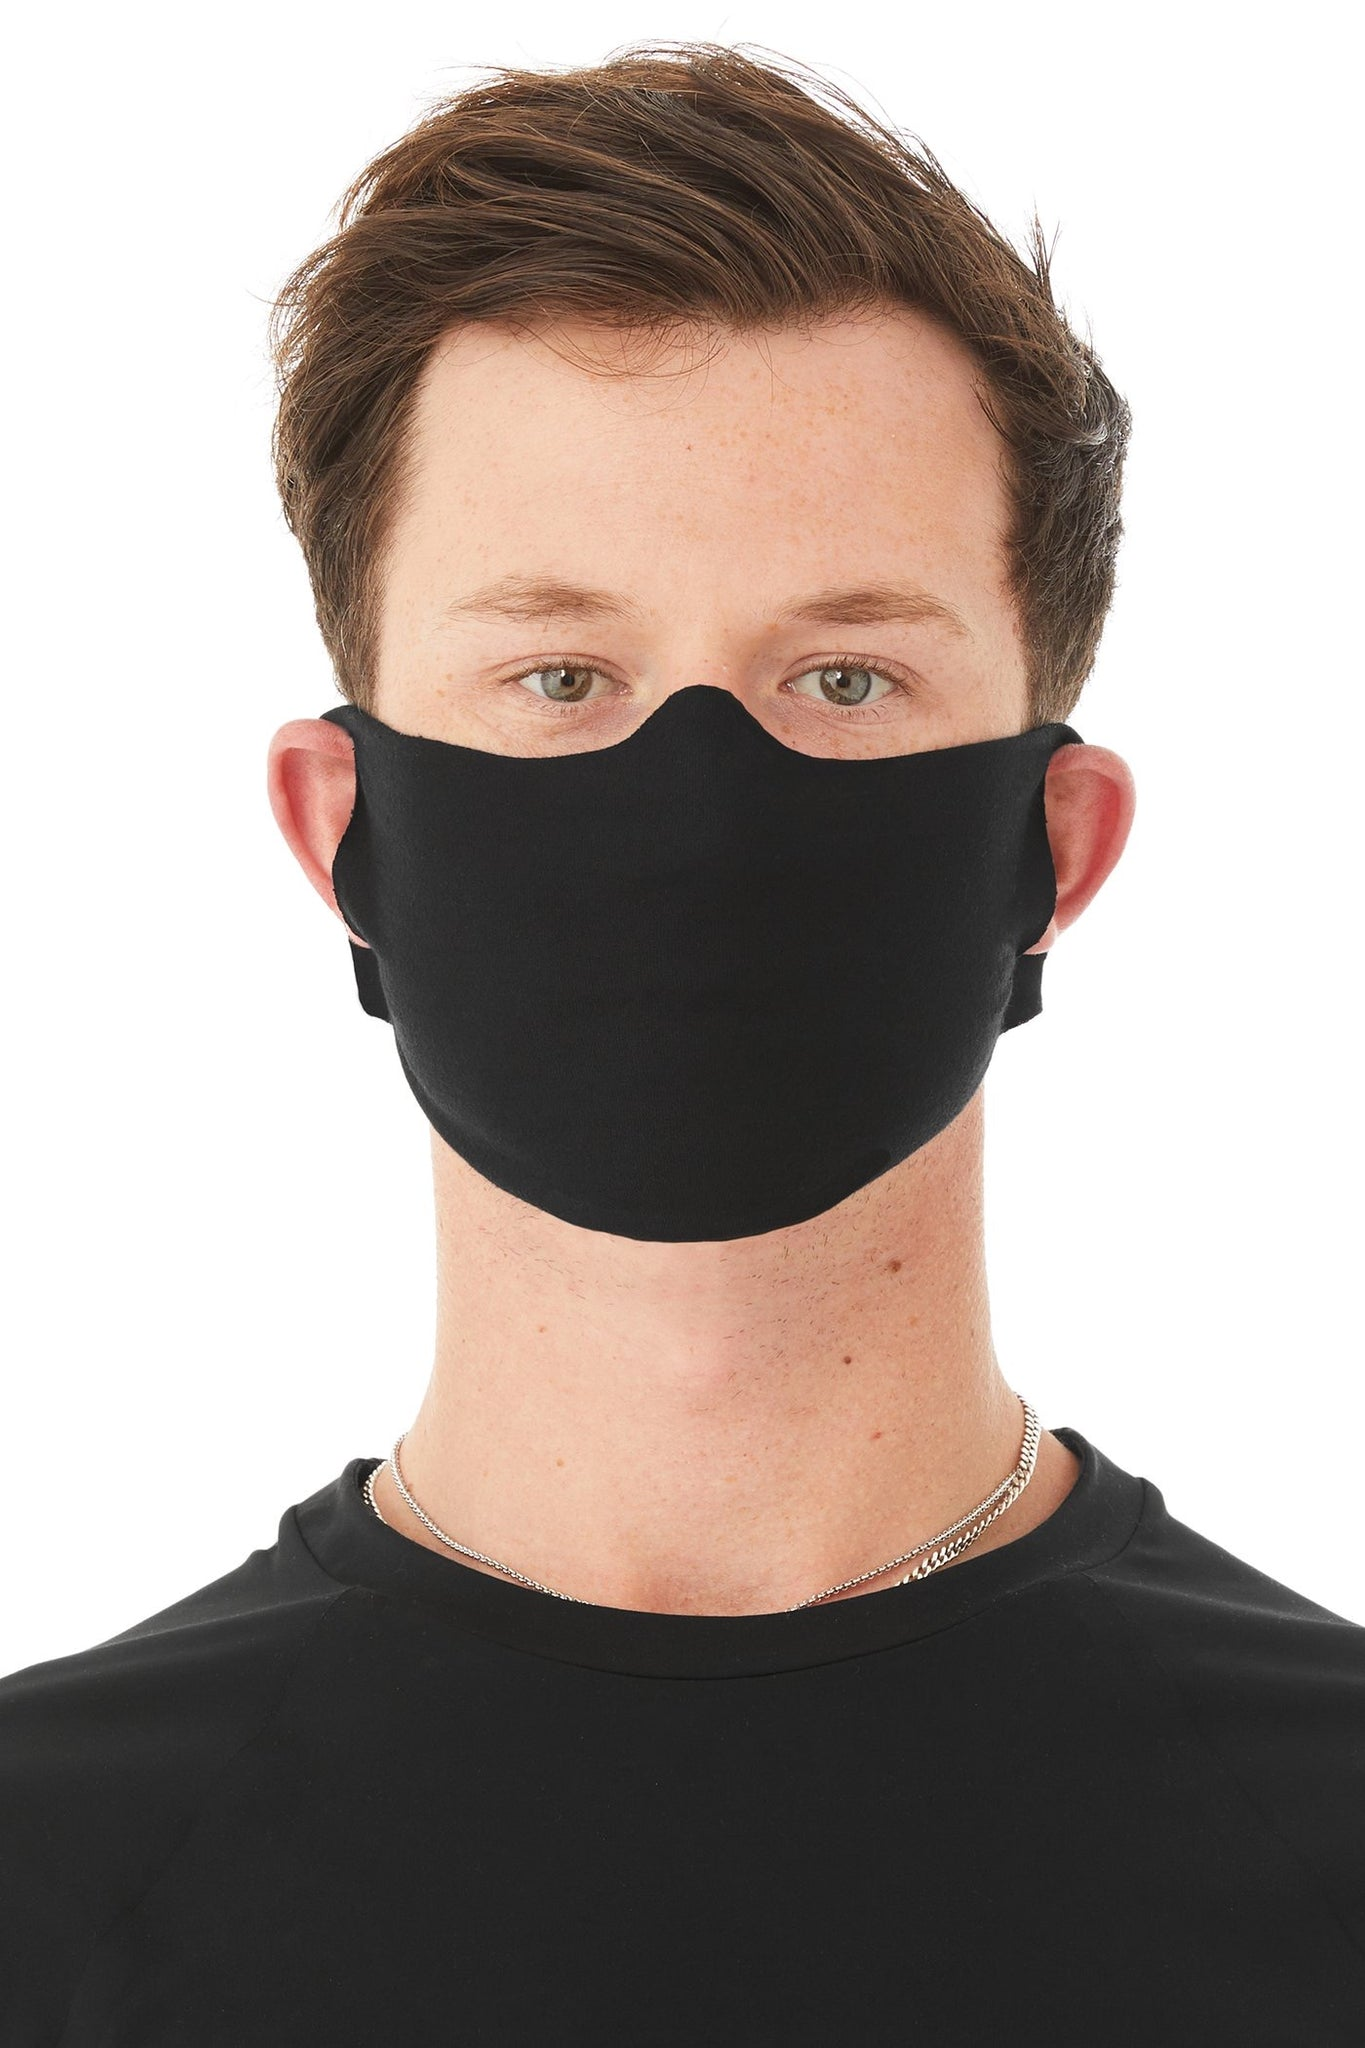 SIMPLE LOW-COST SUPERSOFT DAILY FACE COVER